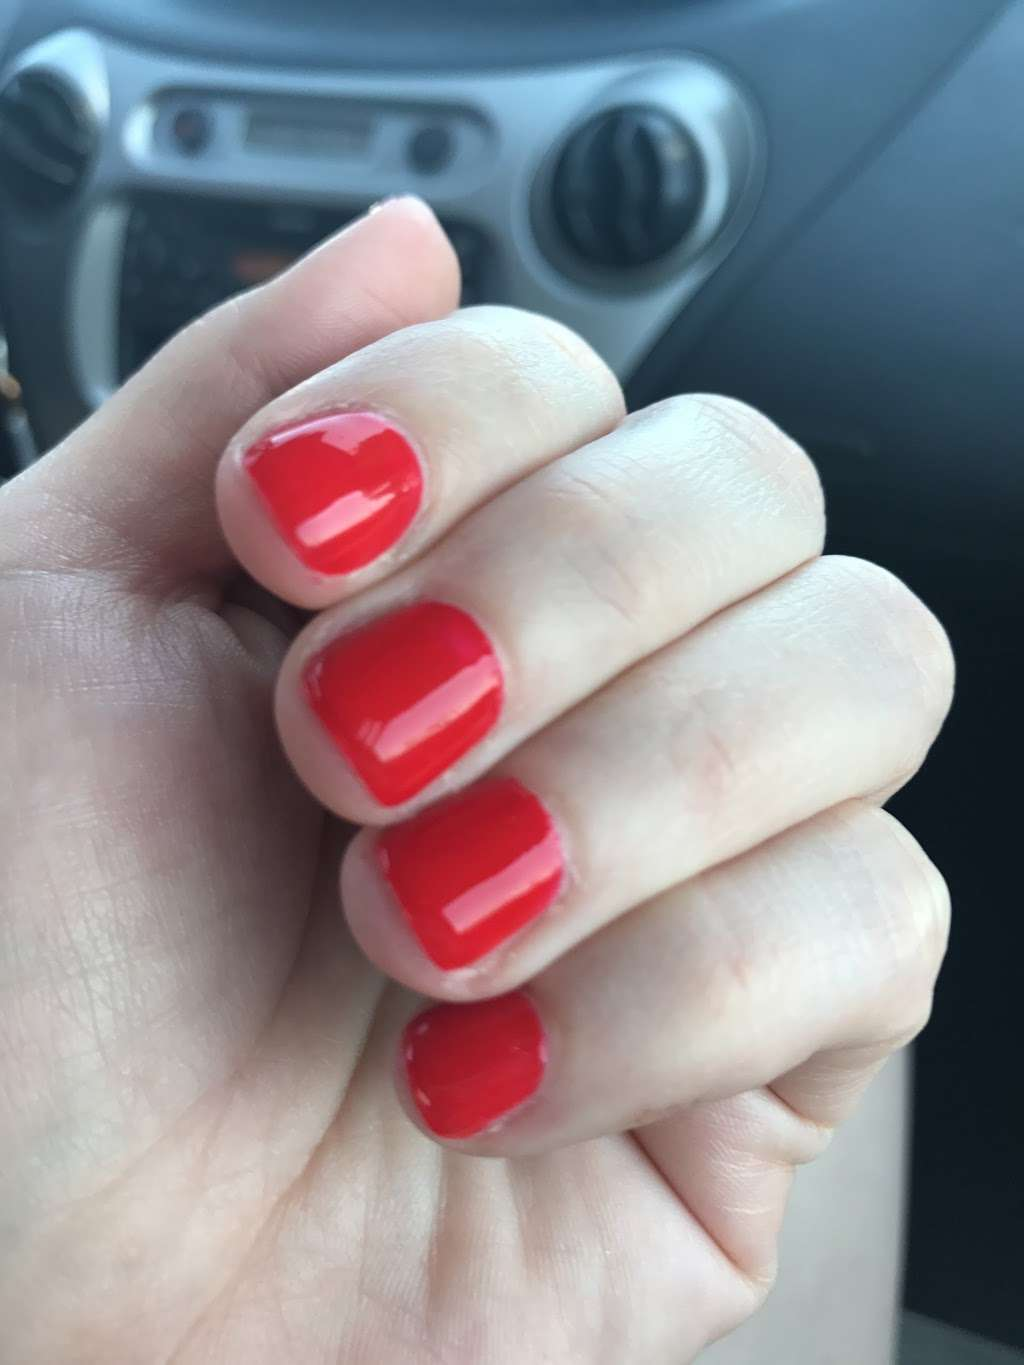 Signature Nail Spa - hair care  | Photo 4 of 9 | Address: 950 Admiral Callaghan Ln, Vallejo, CA 94591, USA | Phone: (707) 649-8989